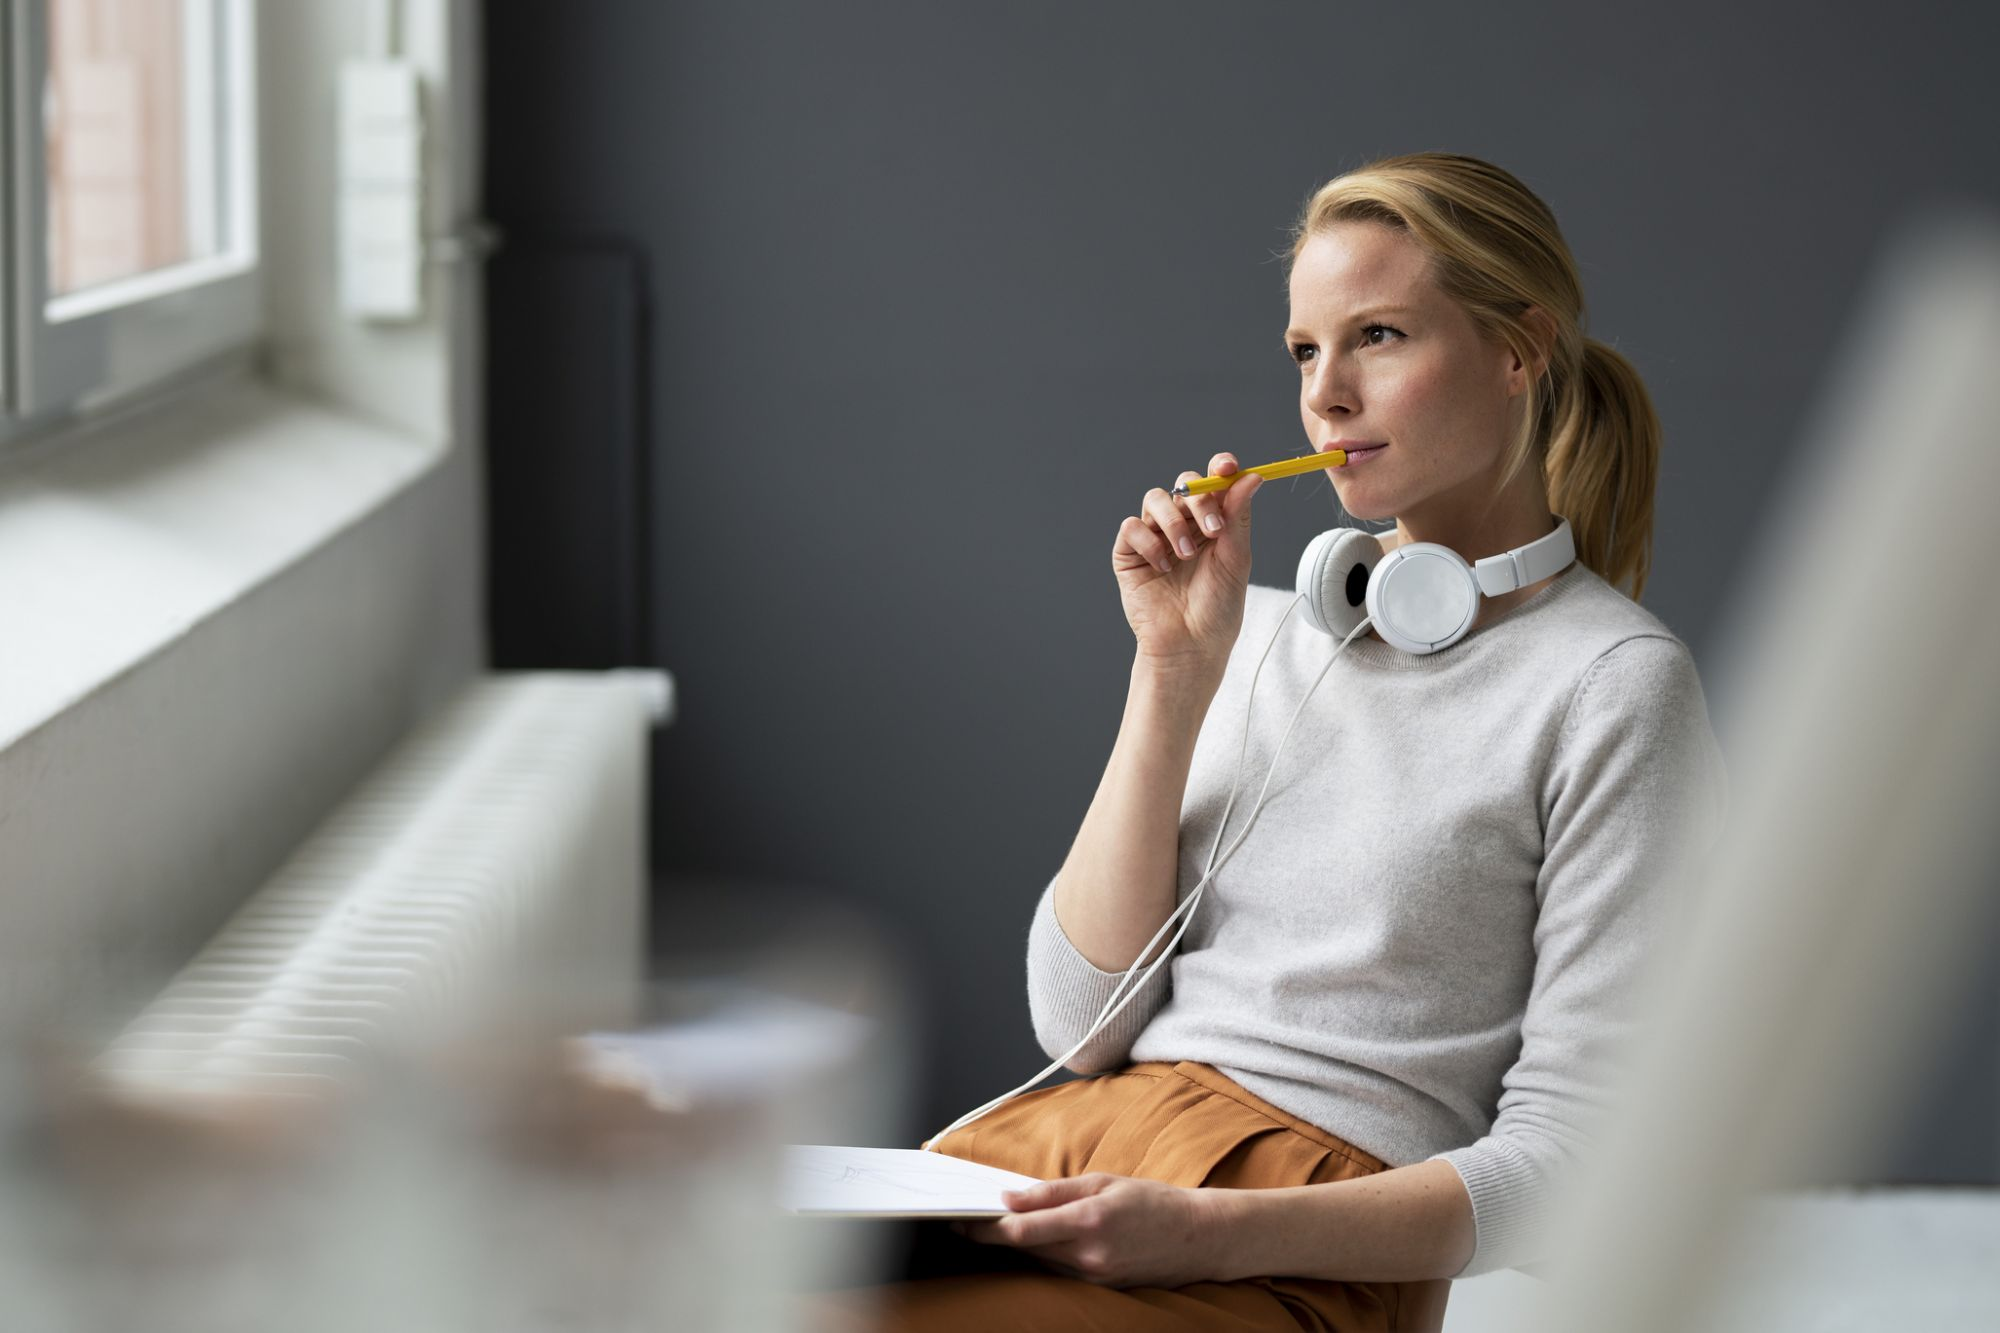 8 Questions That Will Help Diagnose Your Current Career Status